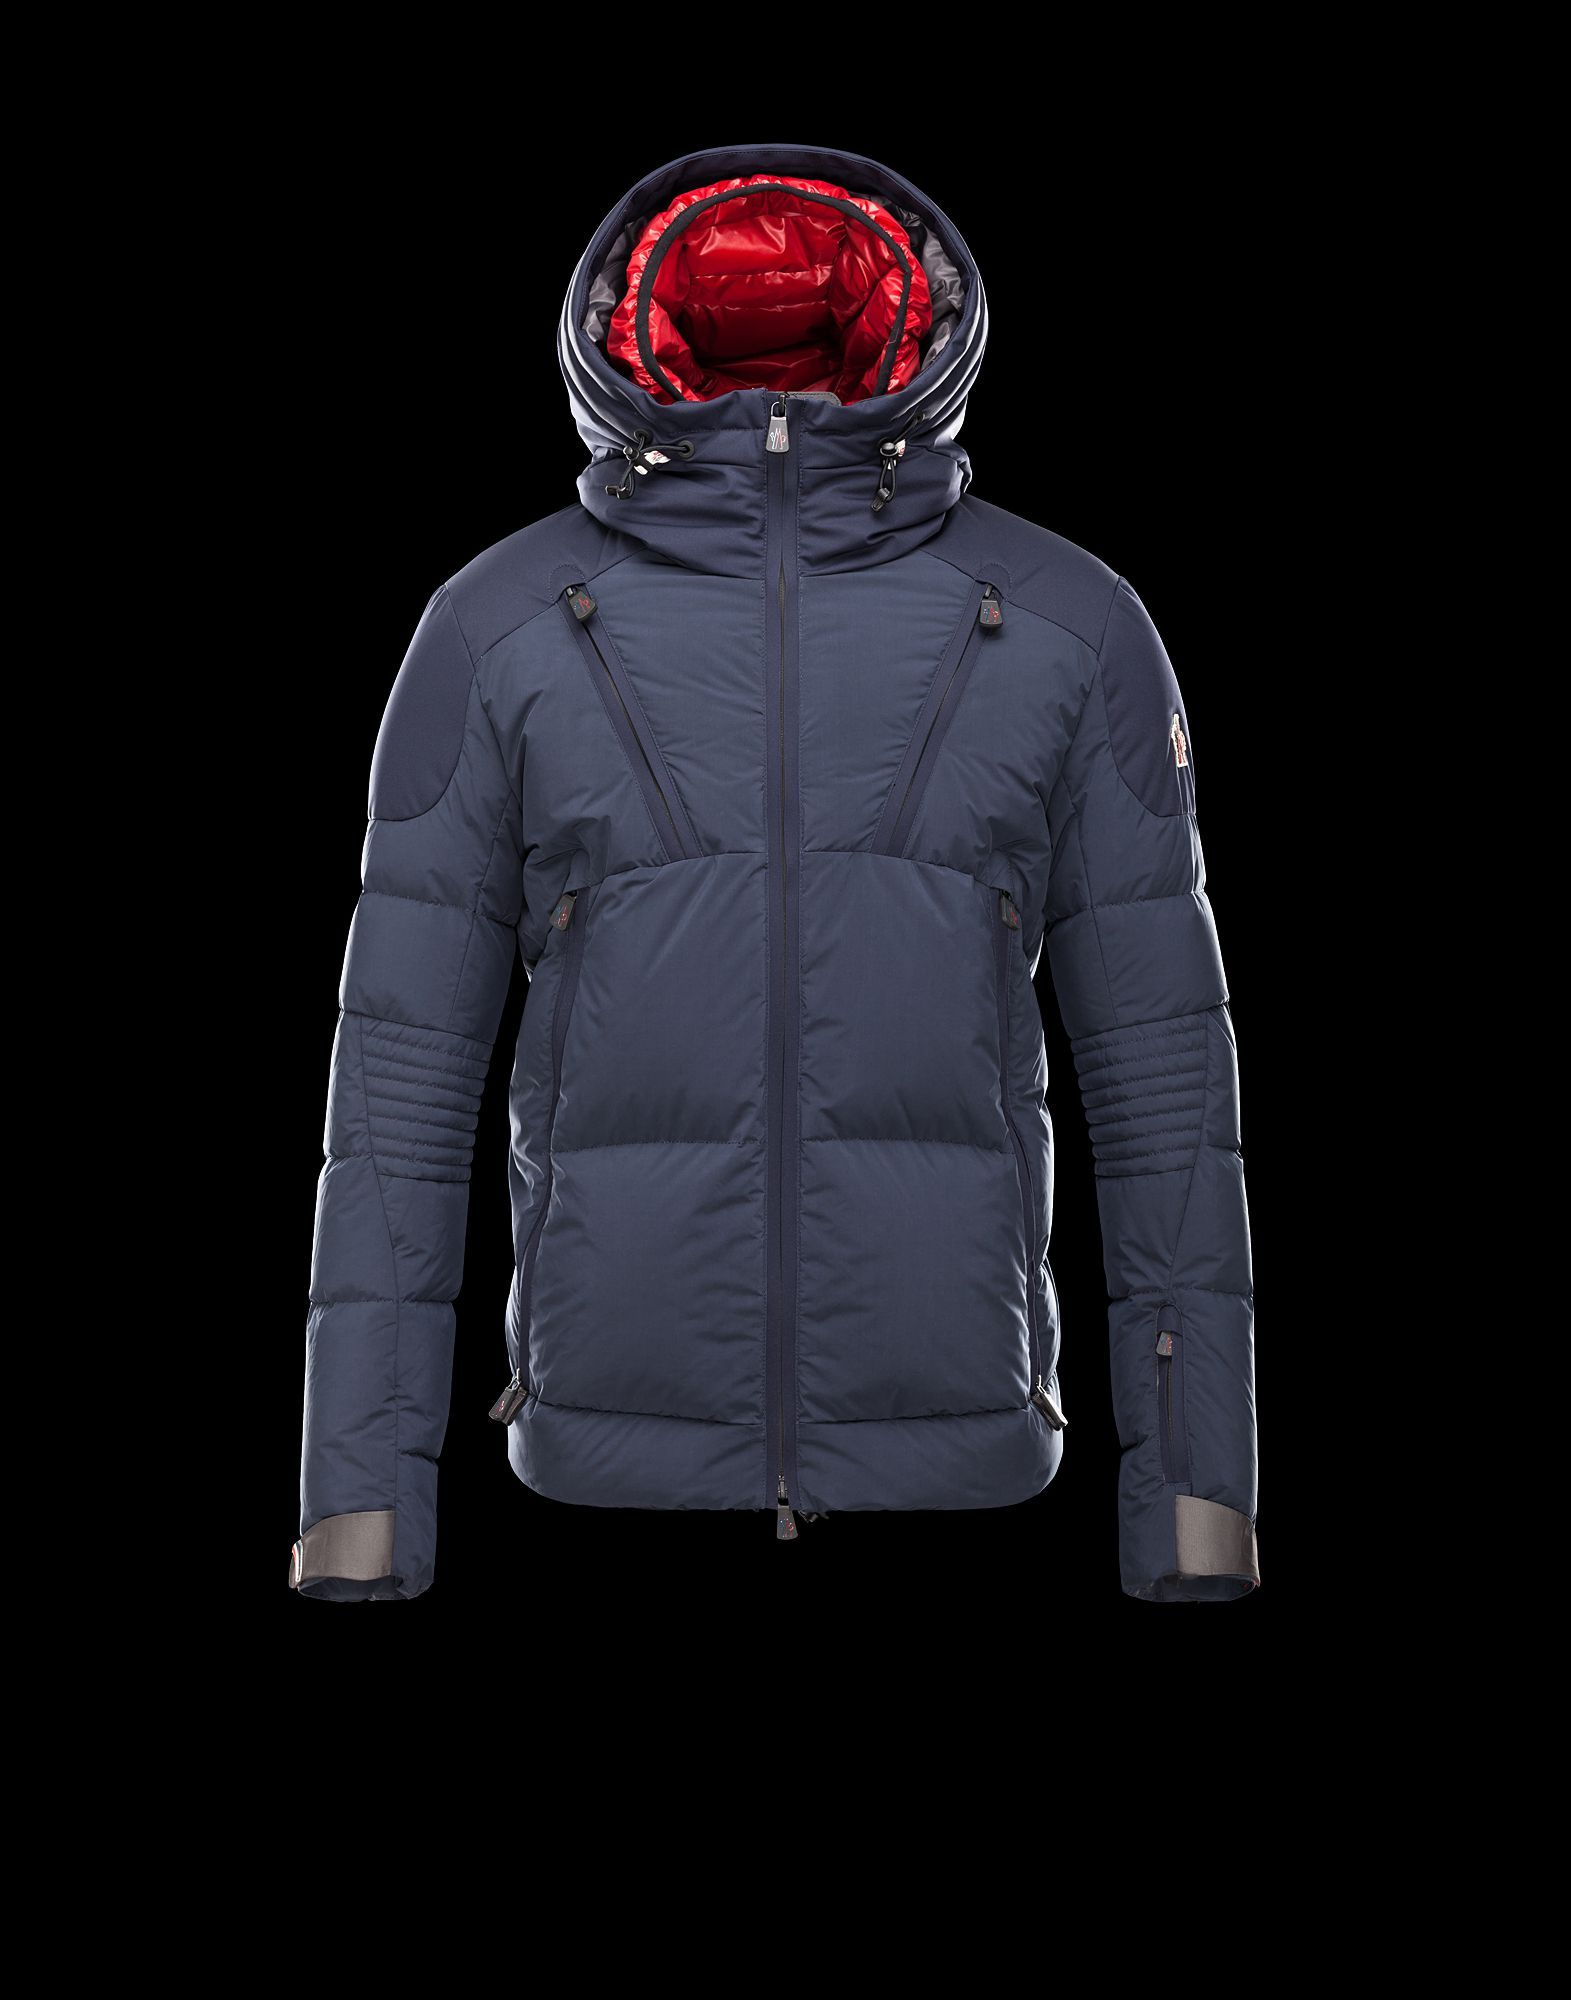 MONCLER   Men s style   Pinterest   Jackets, Mens fashion and Menswear dbcfbb7075b